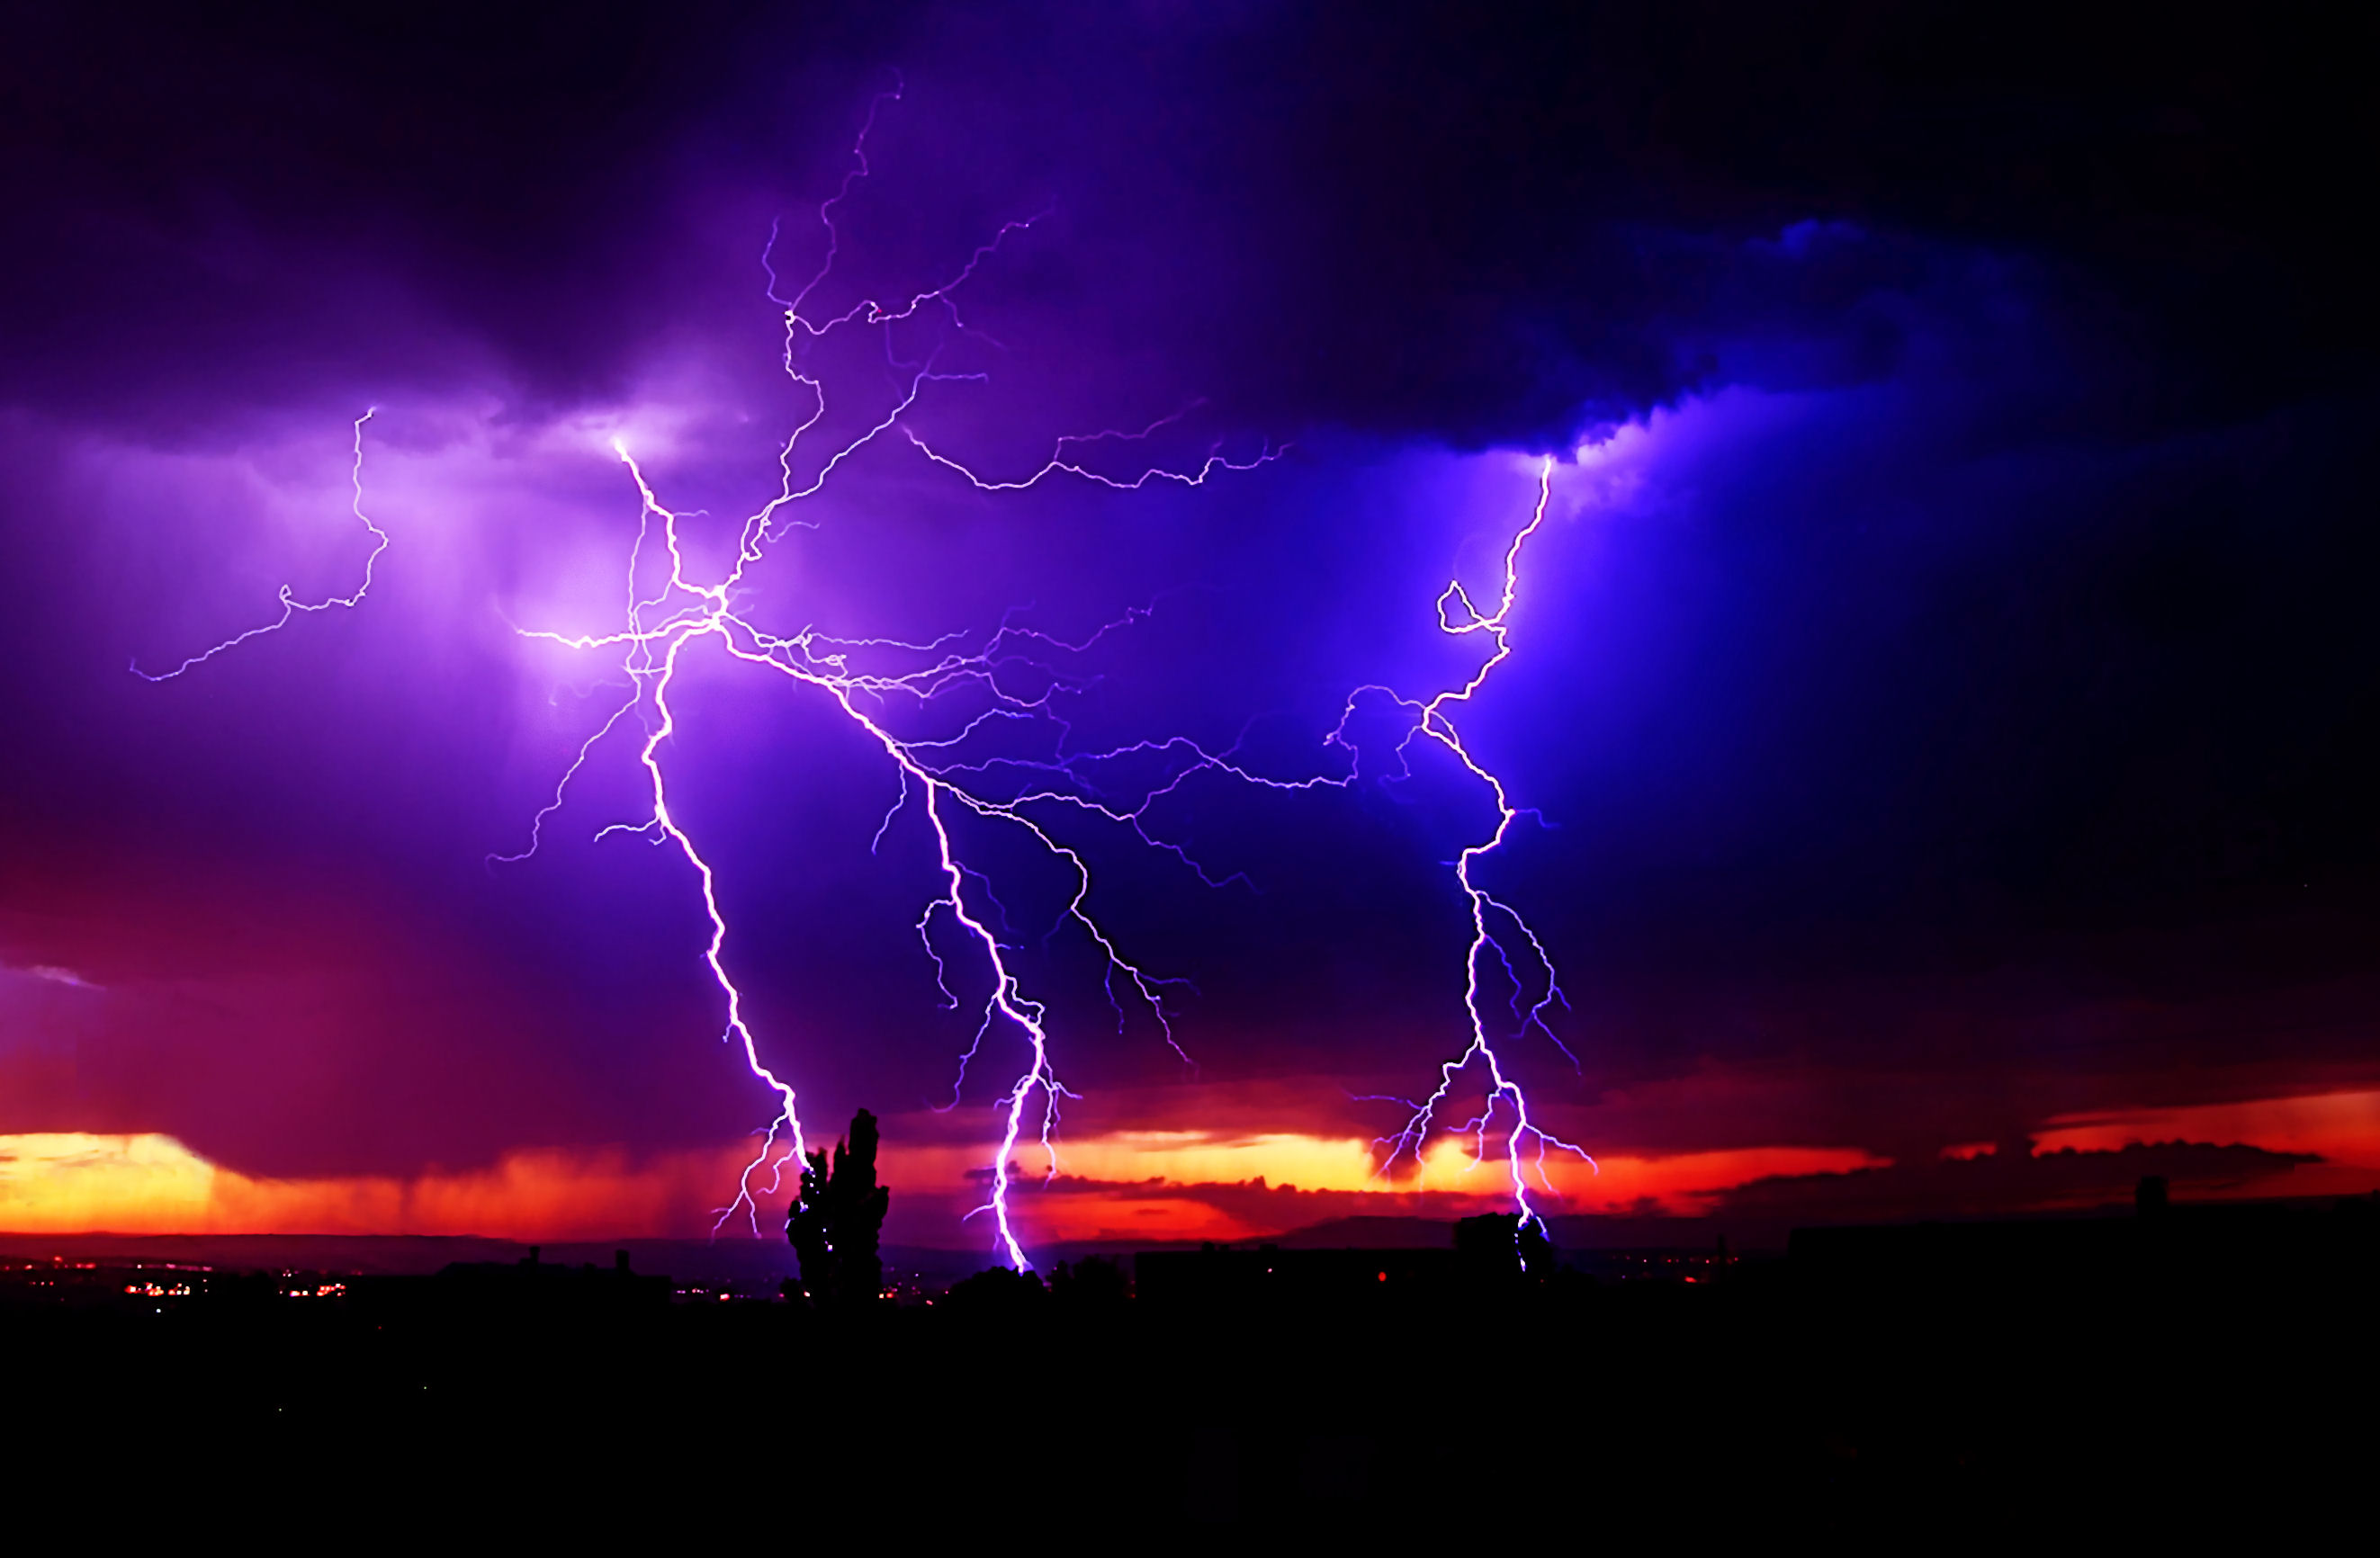 Impressive Lightning Storms for your Desktop Wallpaper Thomas Craig 2645x1732